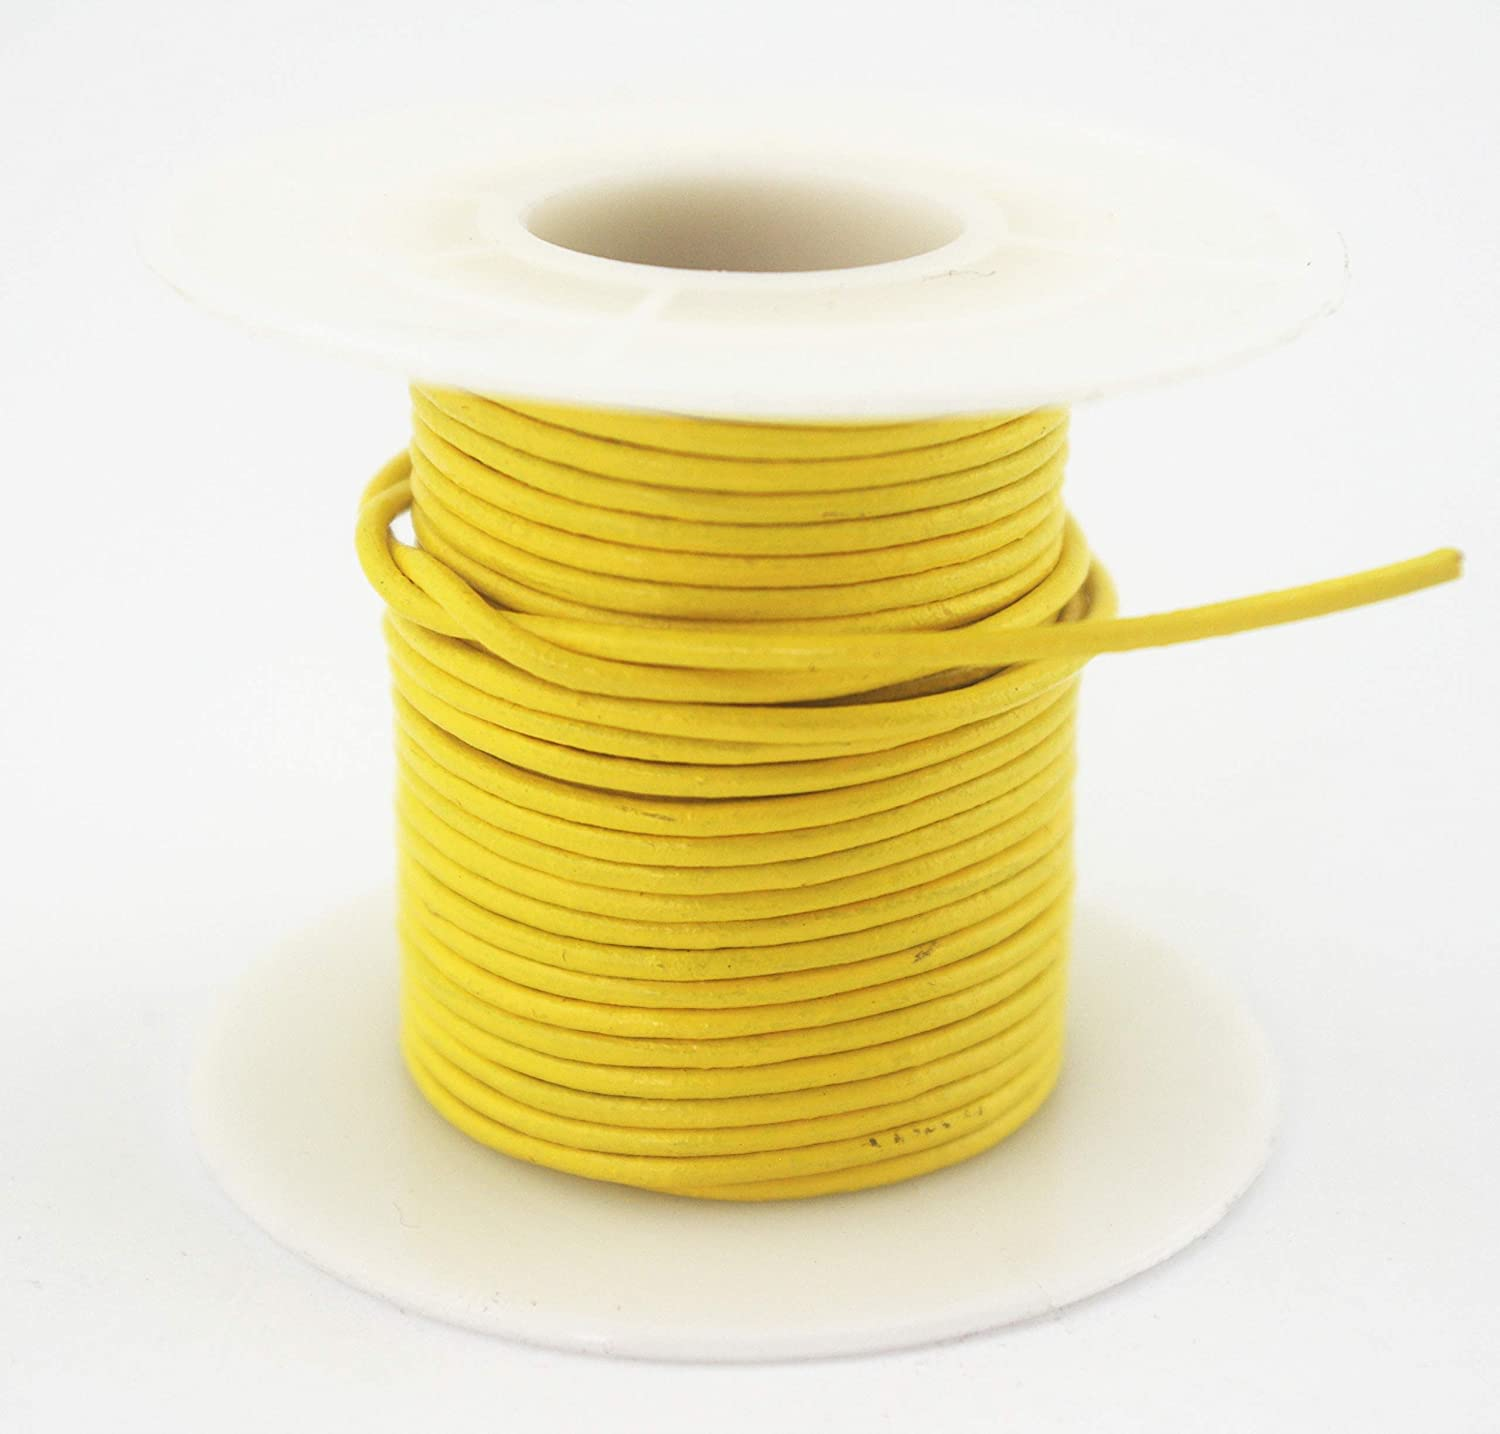 1.5mm, Lemon Yellow Glory Qin Soft Round Genuine Jewelry Leather Cord Leather Rope Beading String